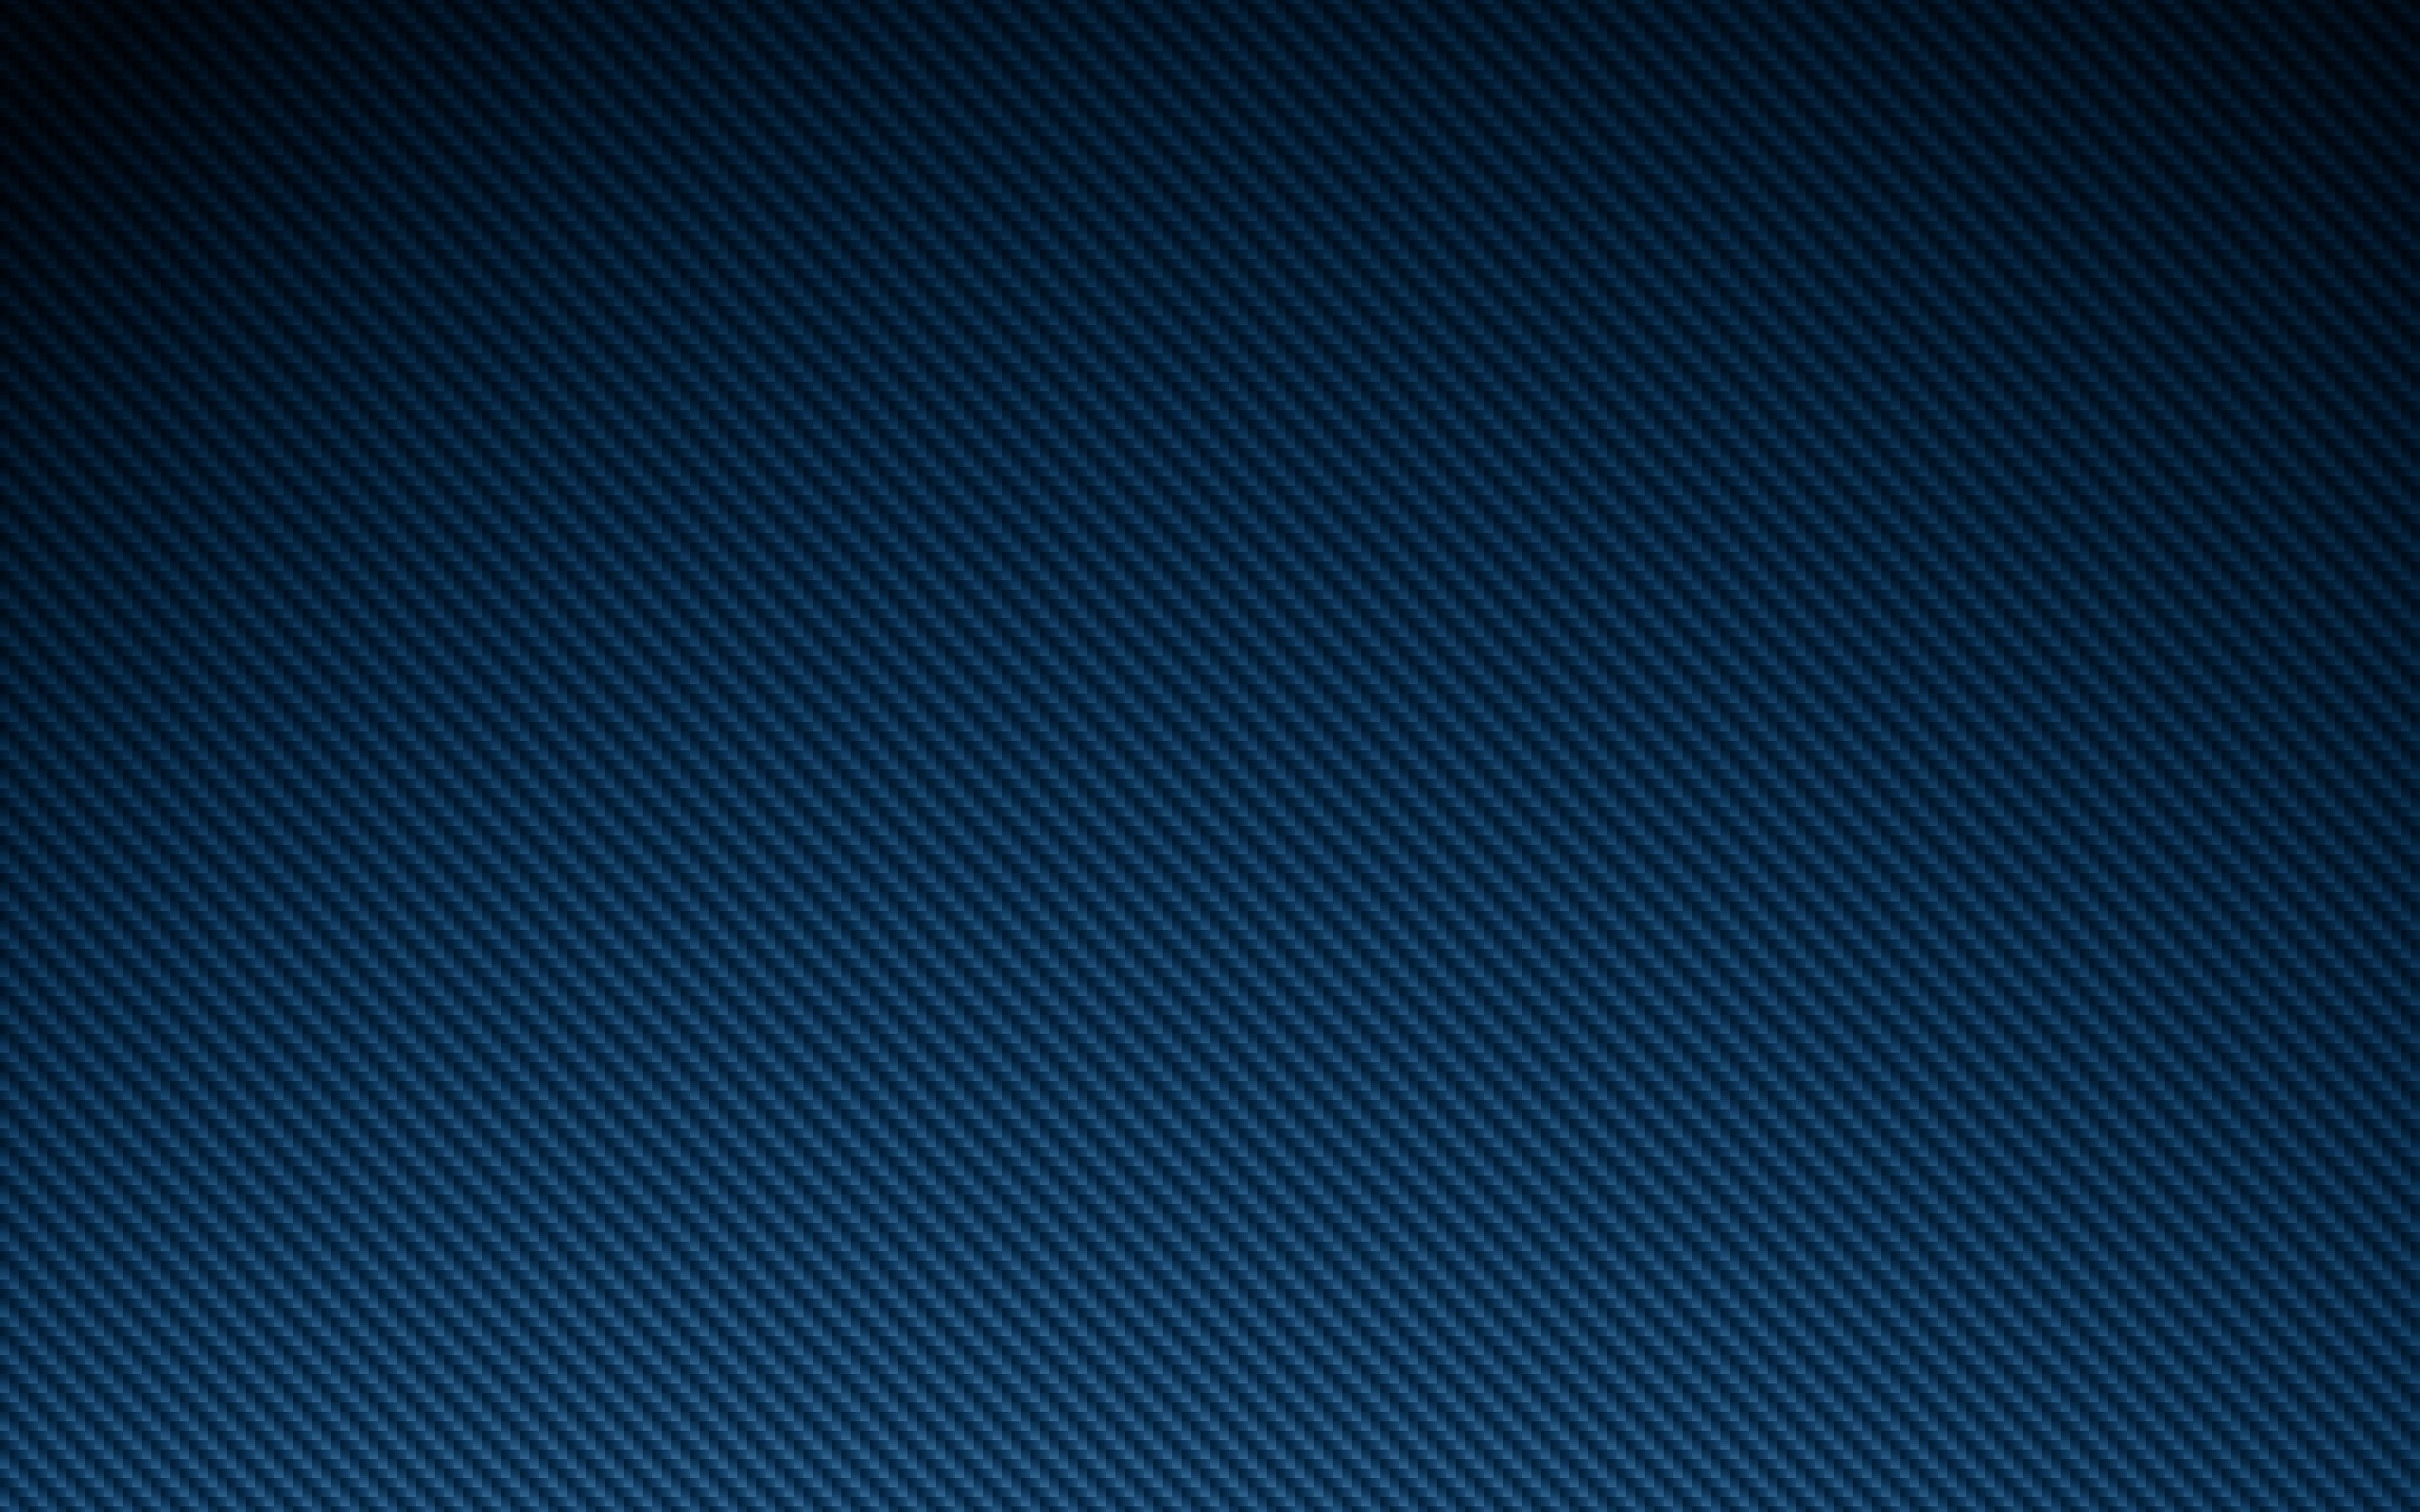 Blue Carbon Fiber Wallpapers 1080p with HD Wallpaper Resolution